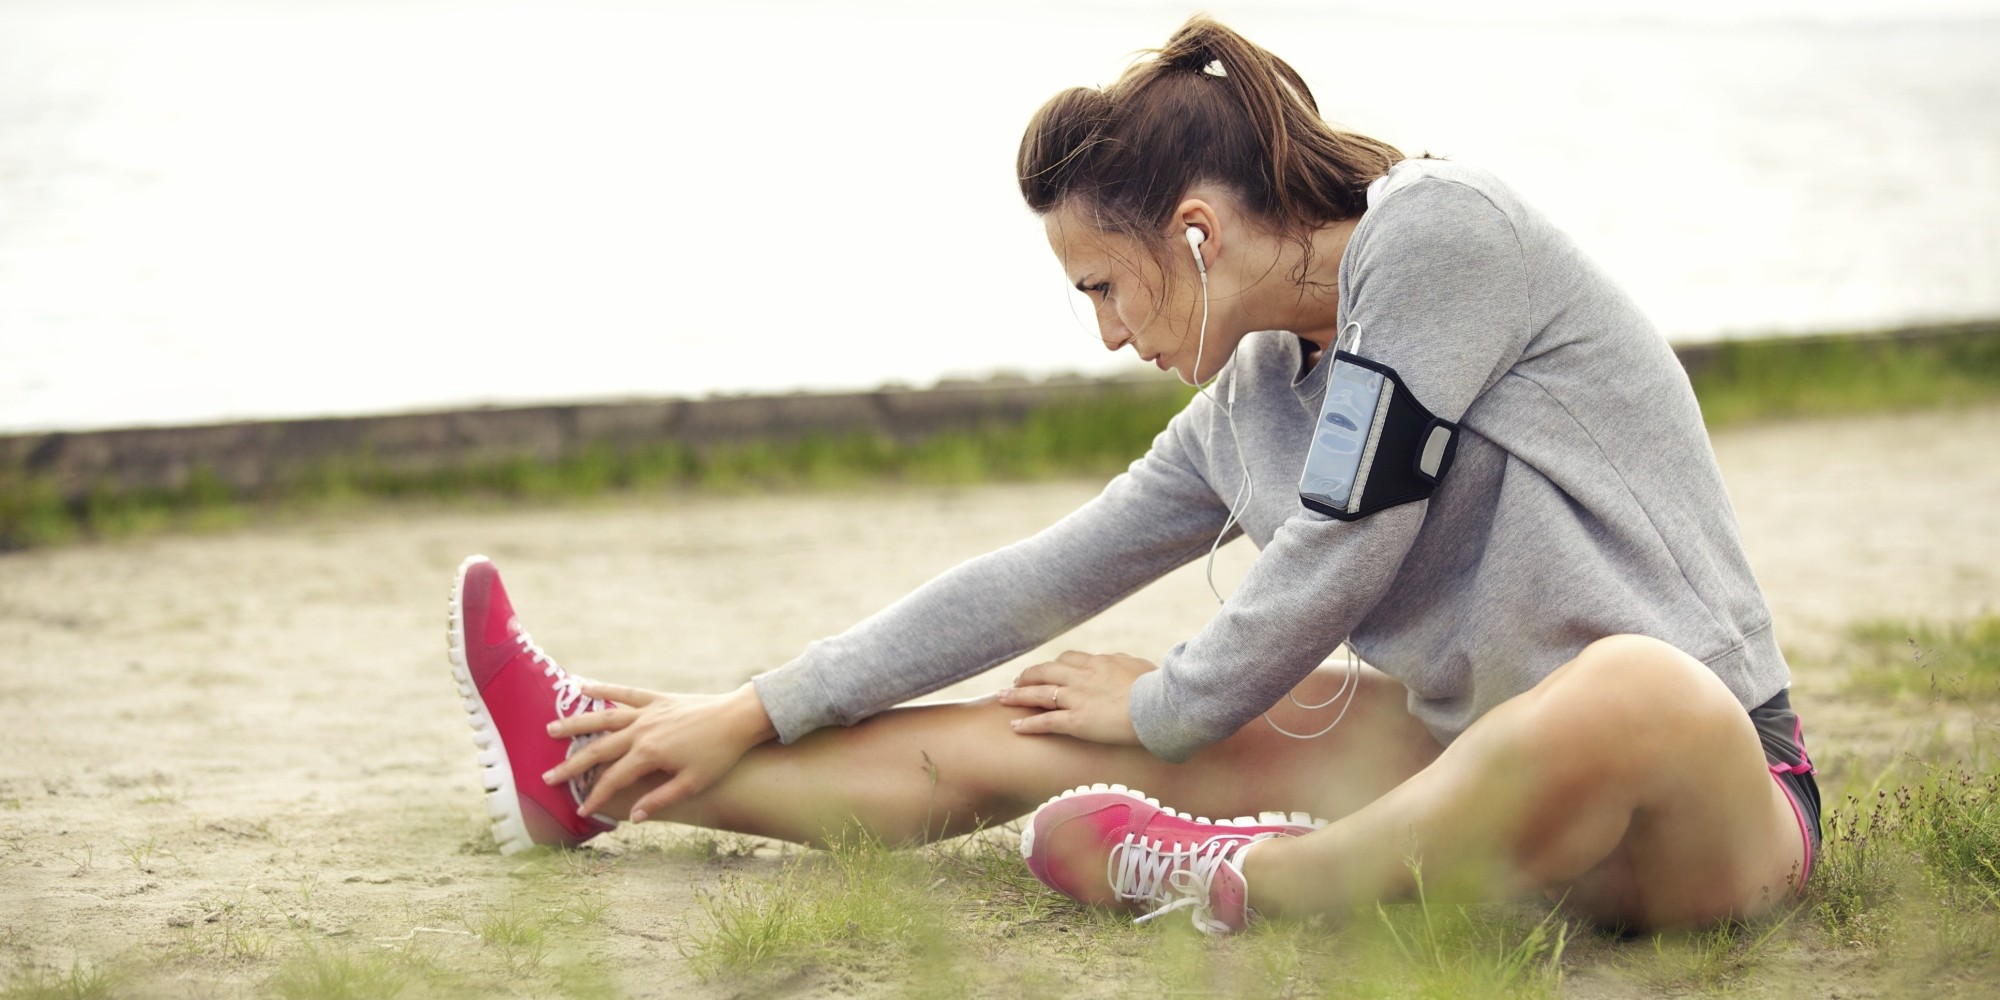 Stretching Tight Running Shoes